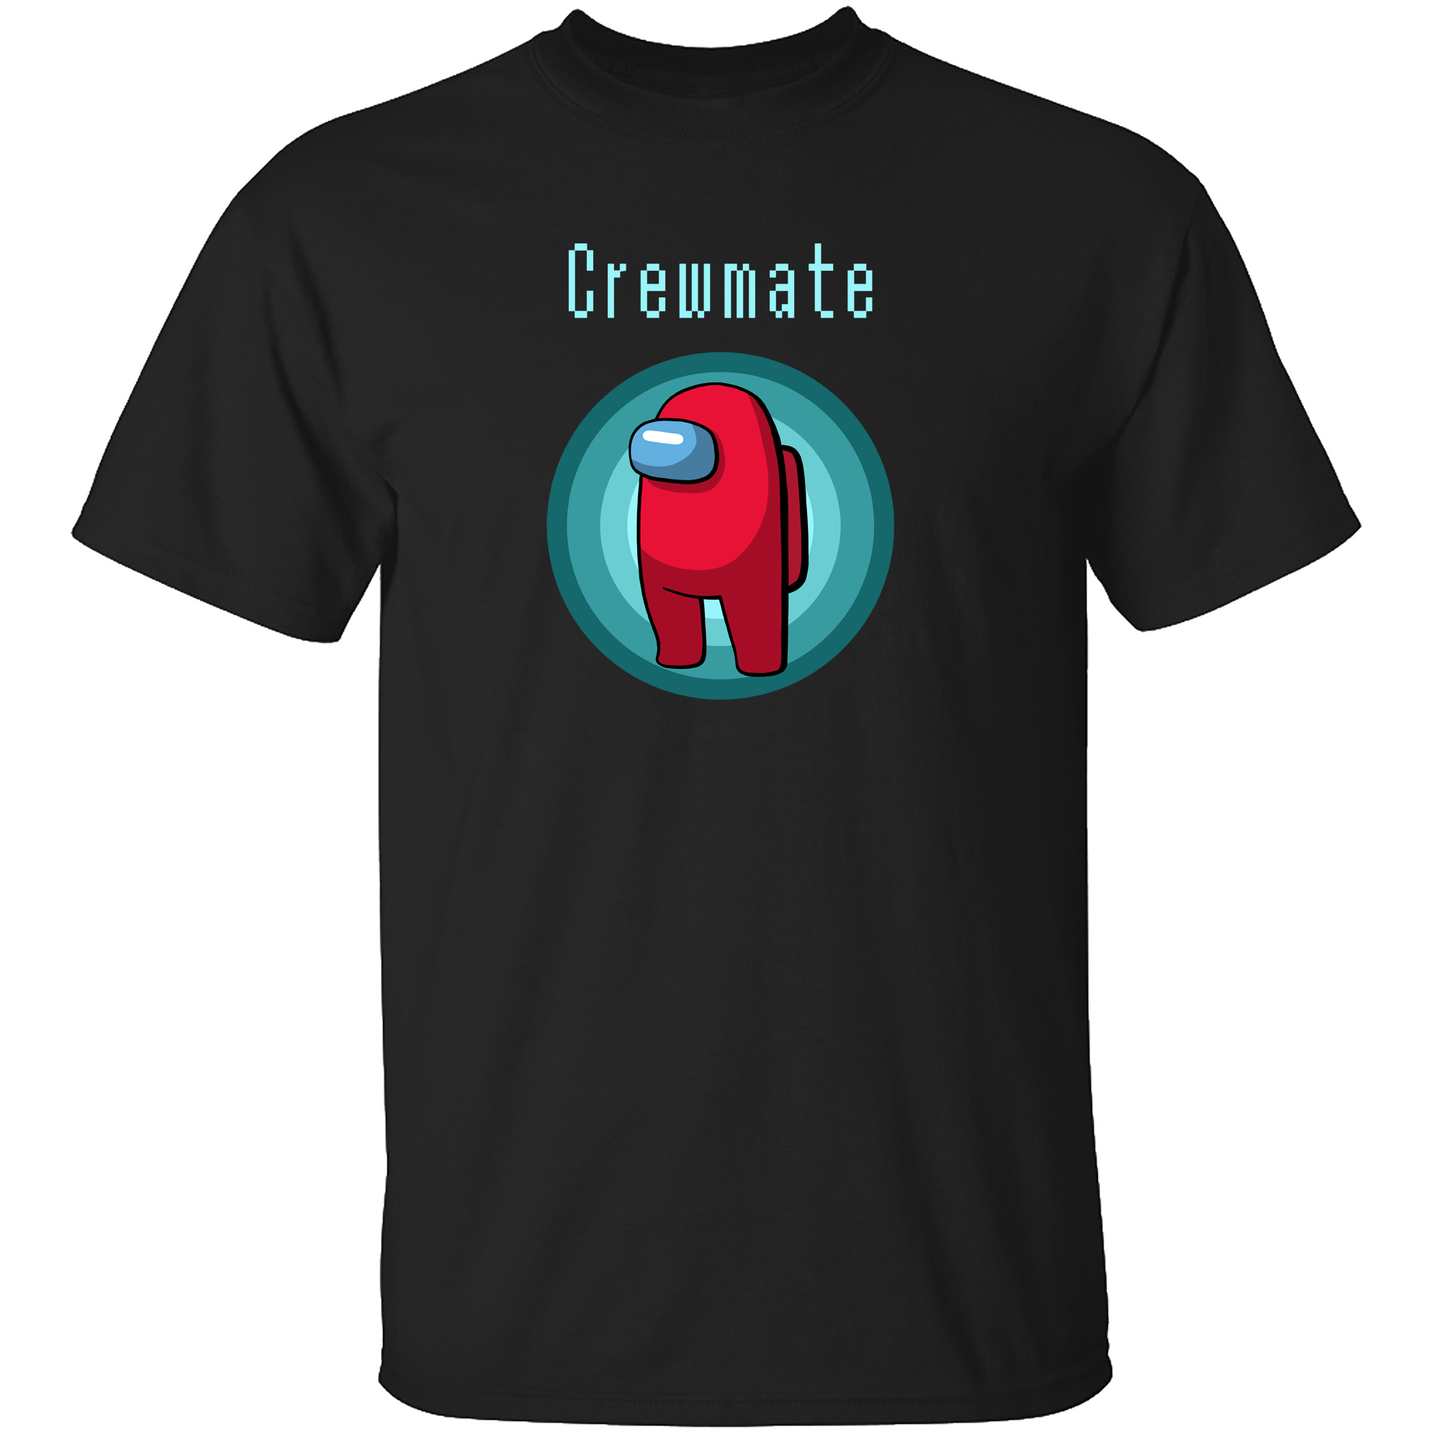 Crewmate - Among Us T-Shirt